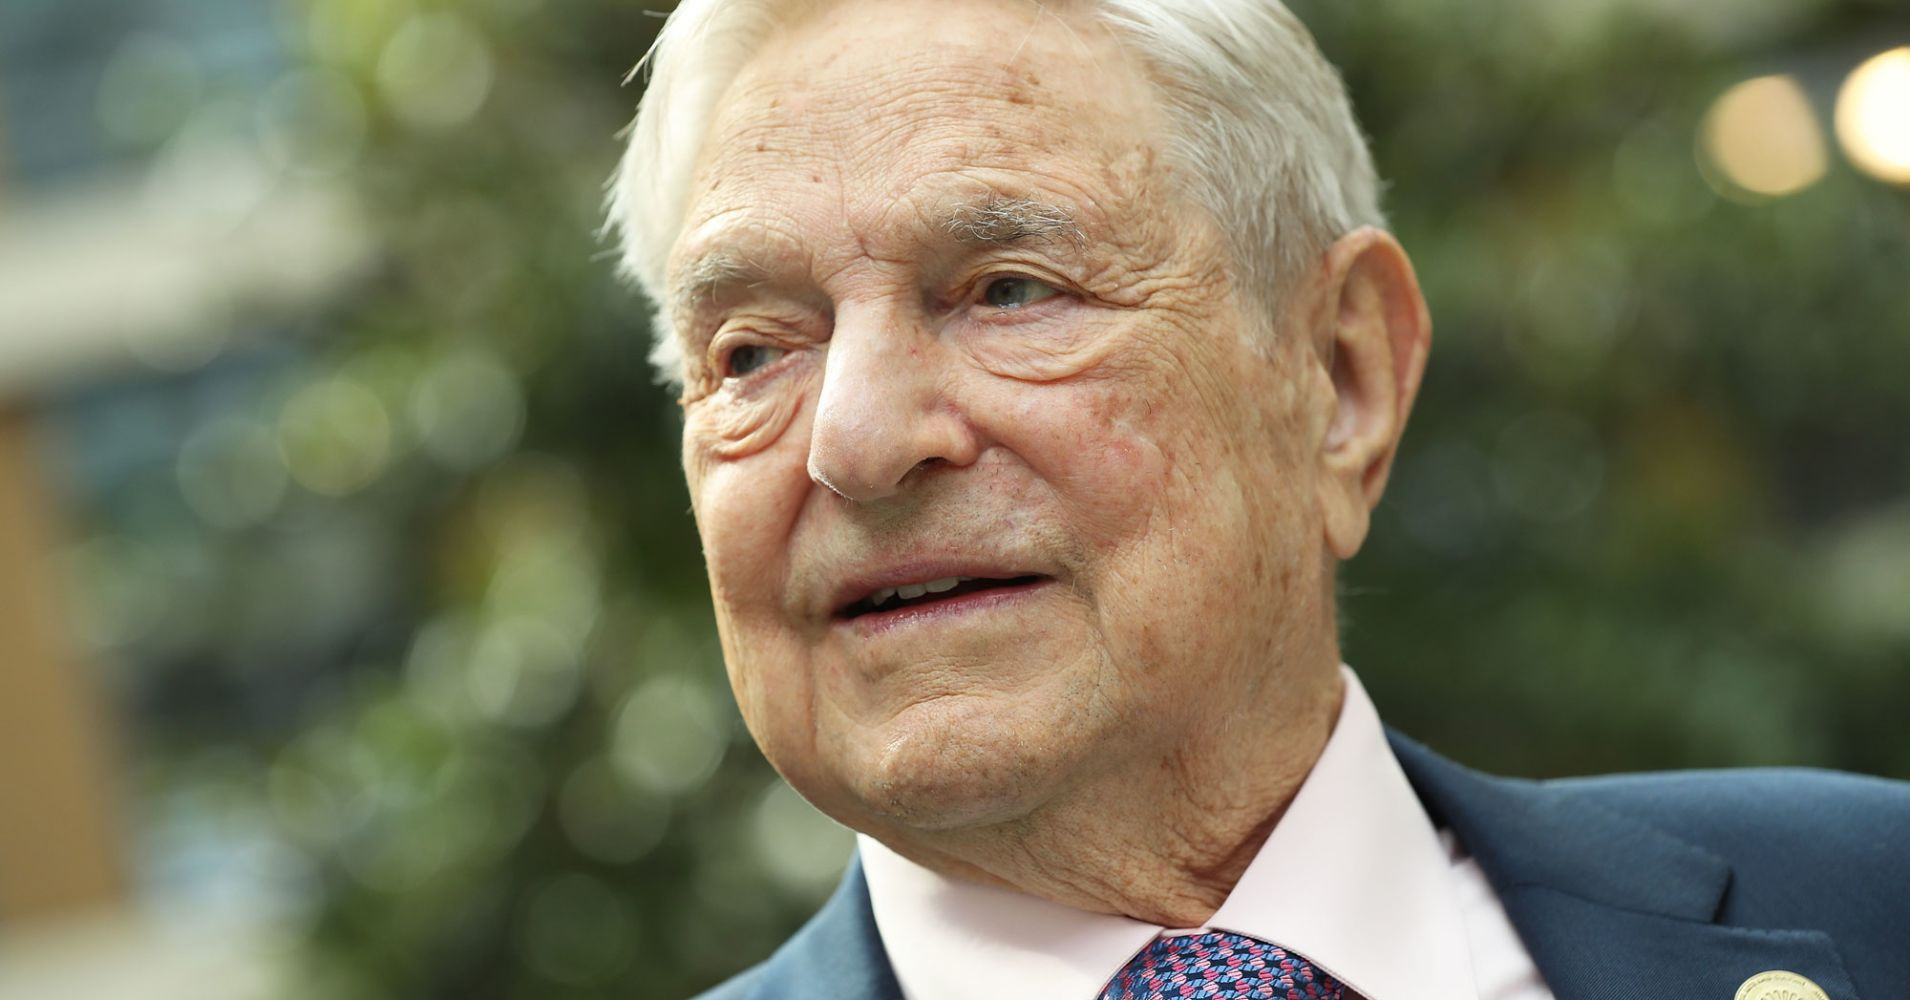 George Soros fund bought $35 million of Tesla bonds